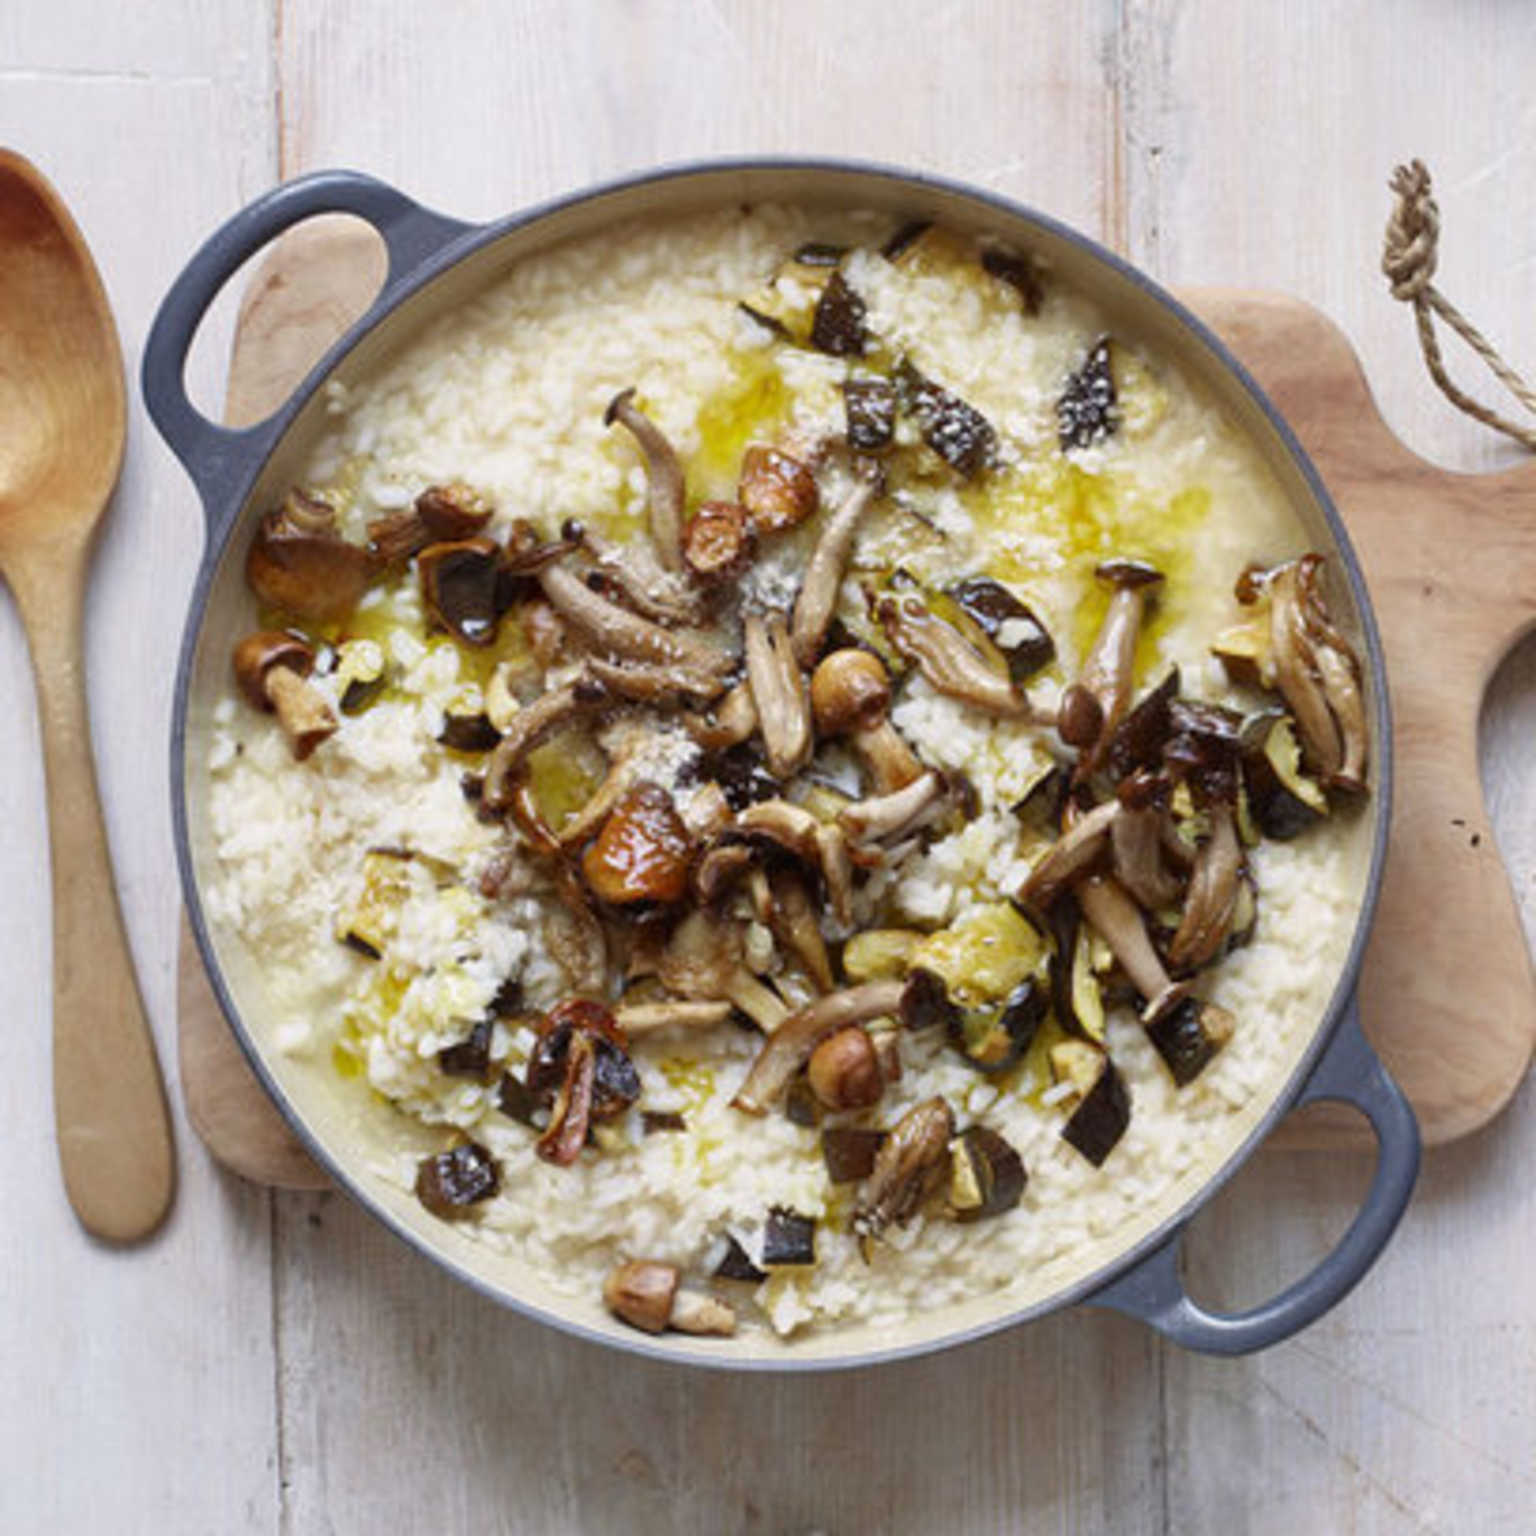 Gordon Ramsay's baked courgette & wild mushroom risotto